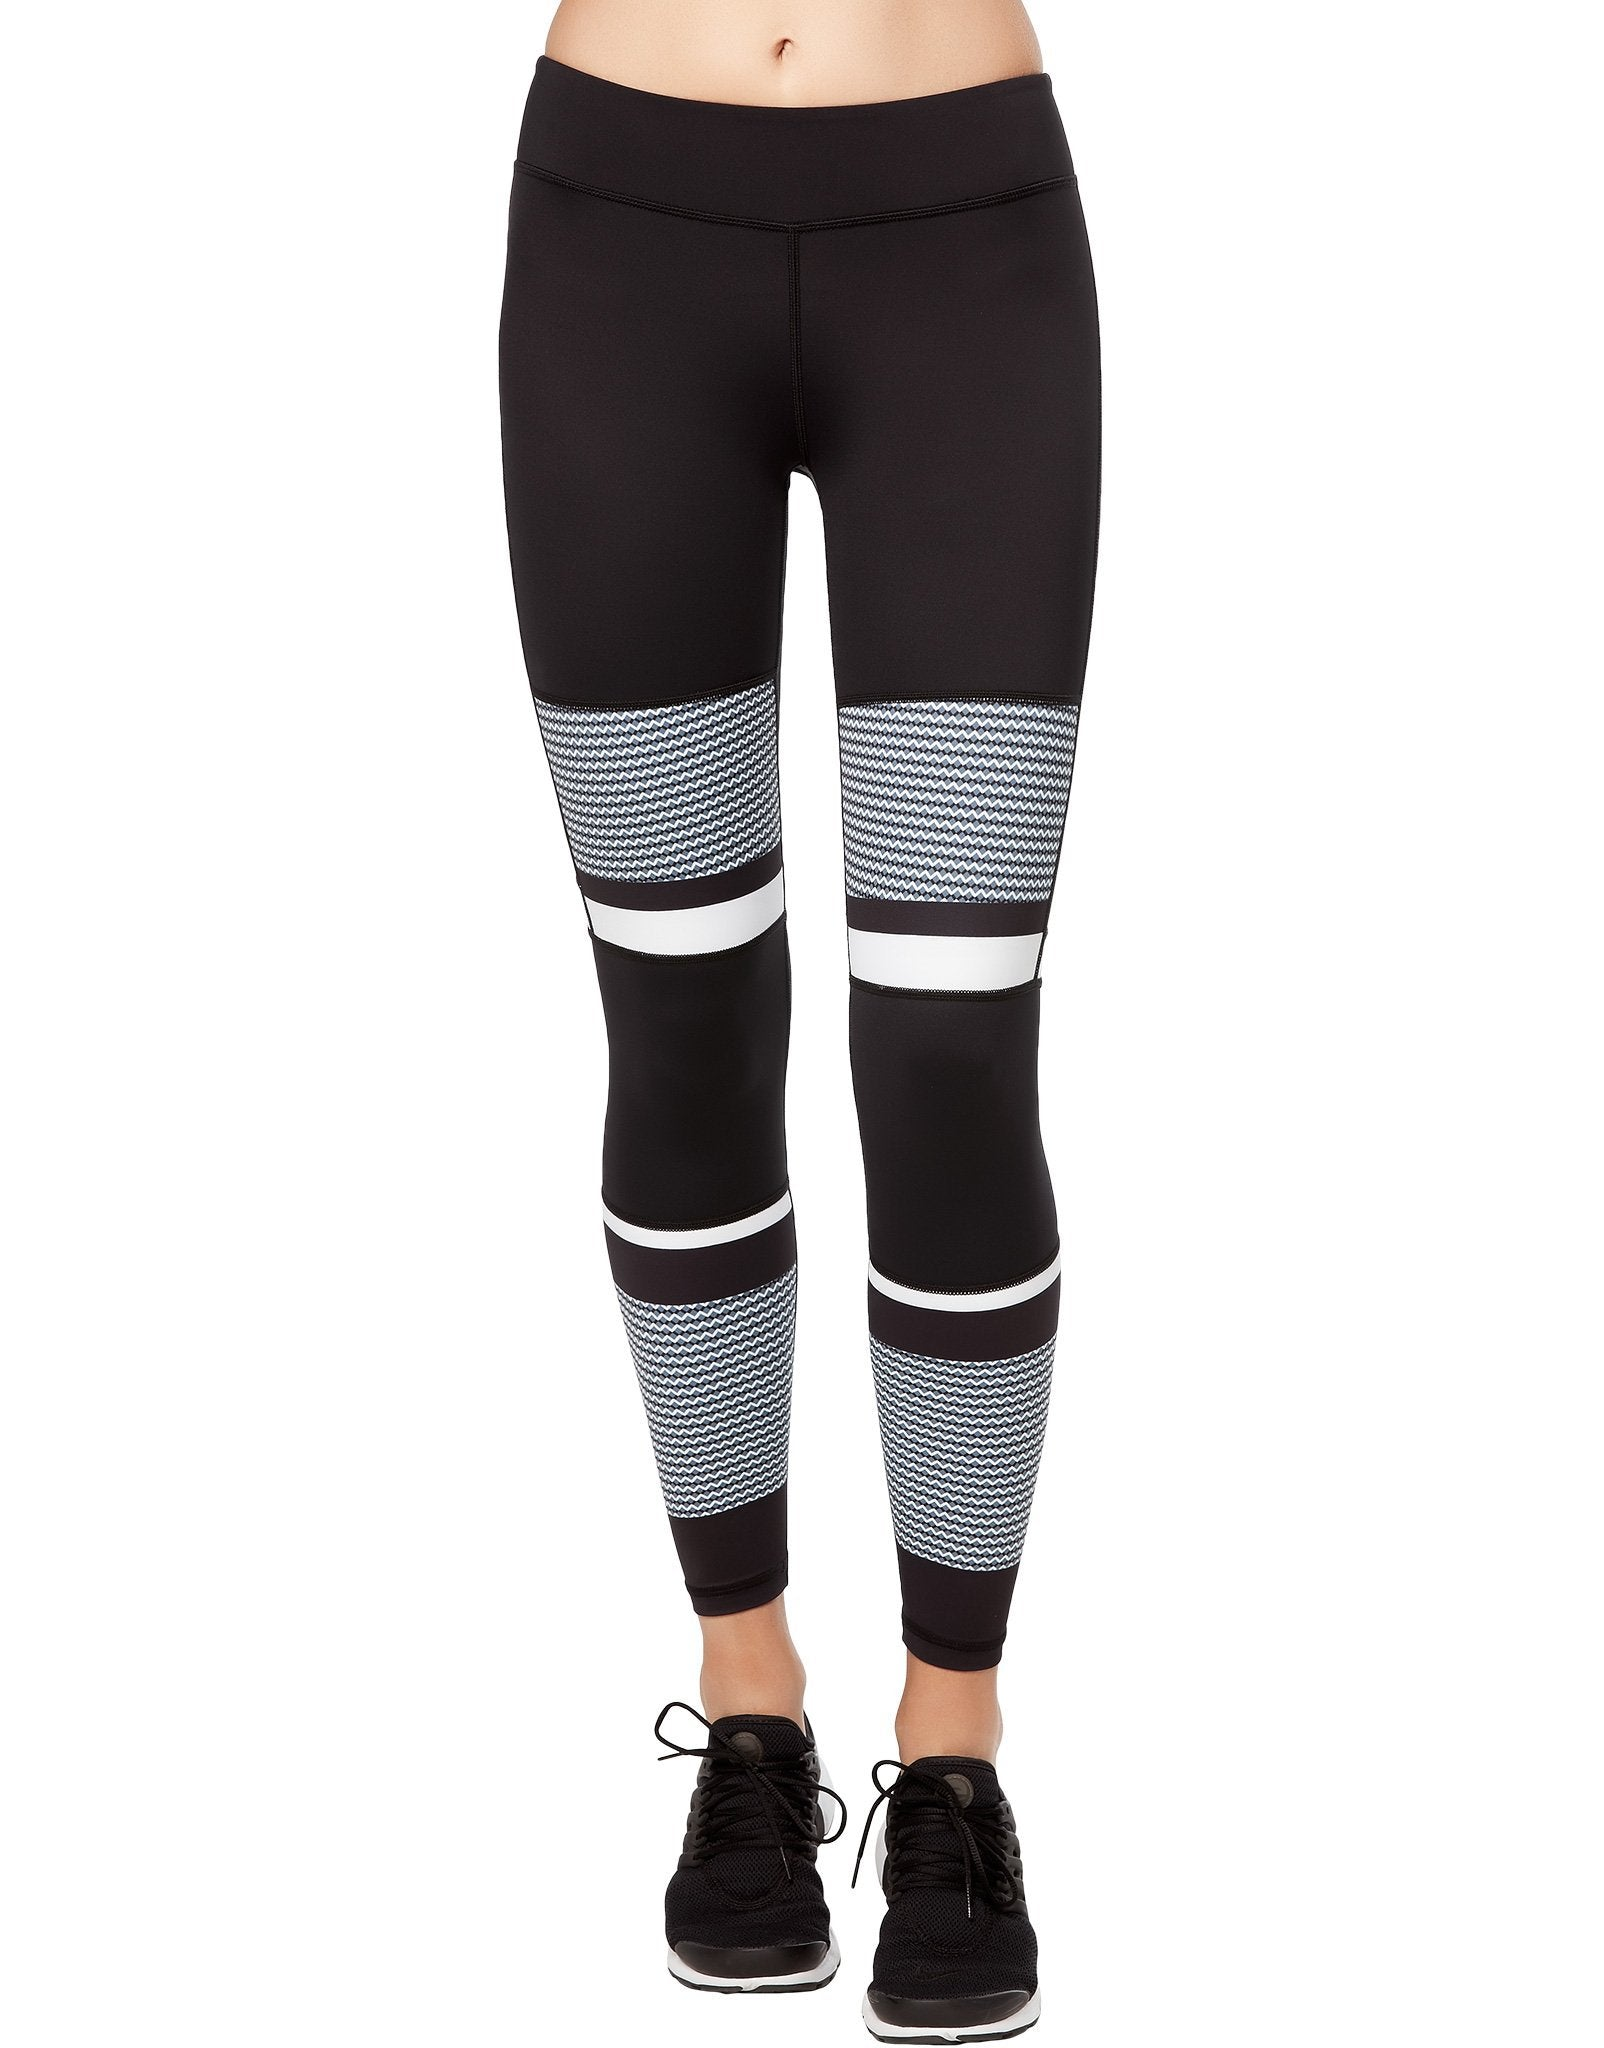 c12a677020ef6 Activewear Leggings   Quality, Comfort & Style   Get KITTED